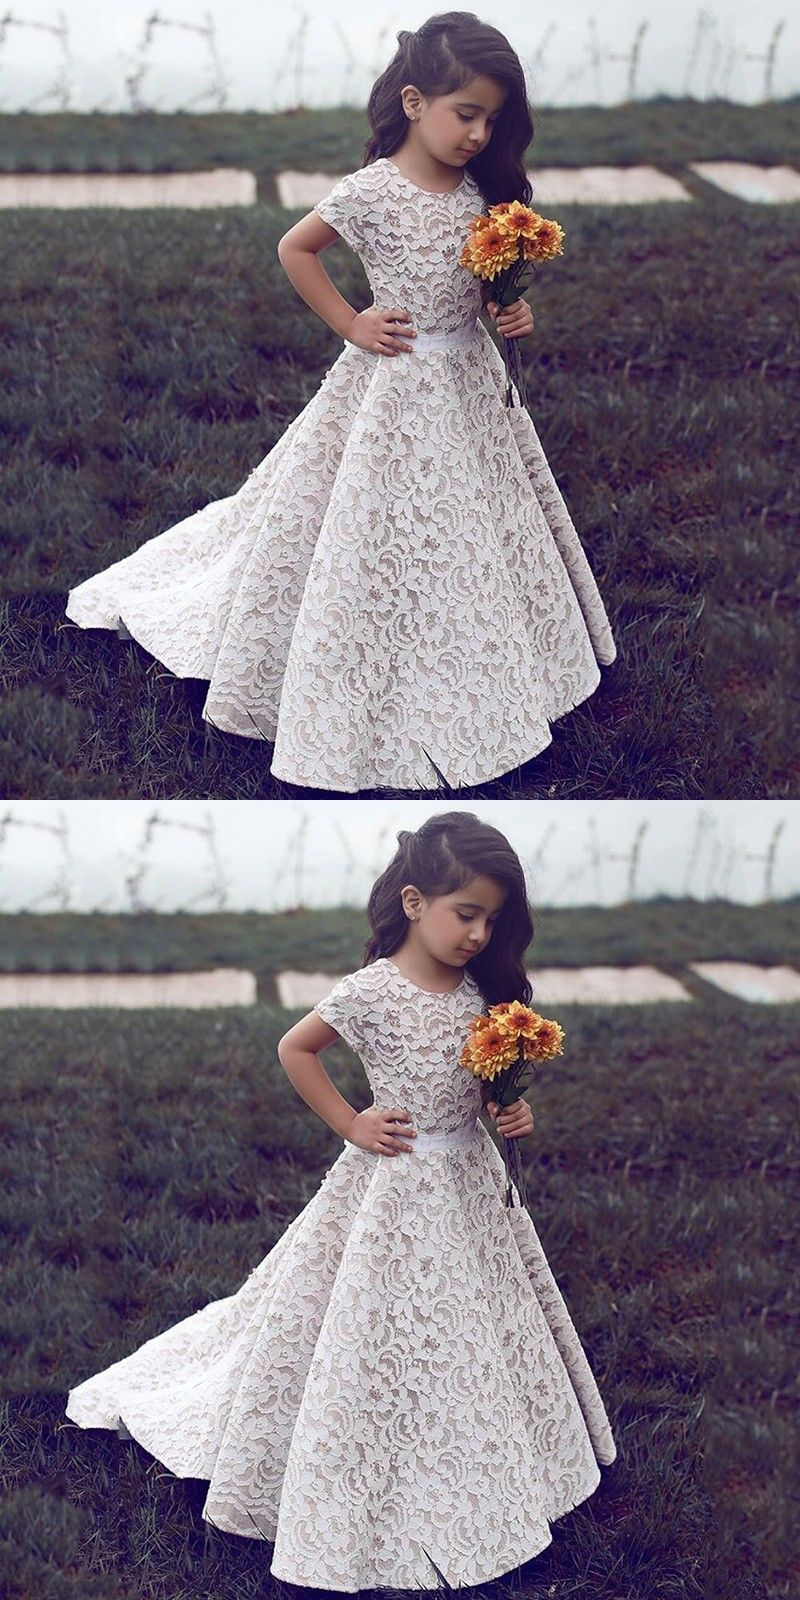 Cute Short Sleeve Ivory Lace Flower Girl Dress With Train From